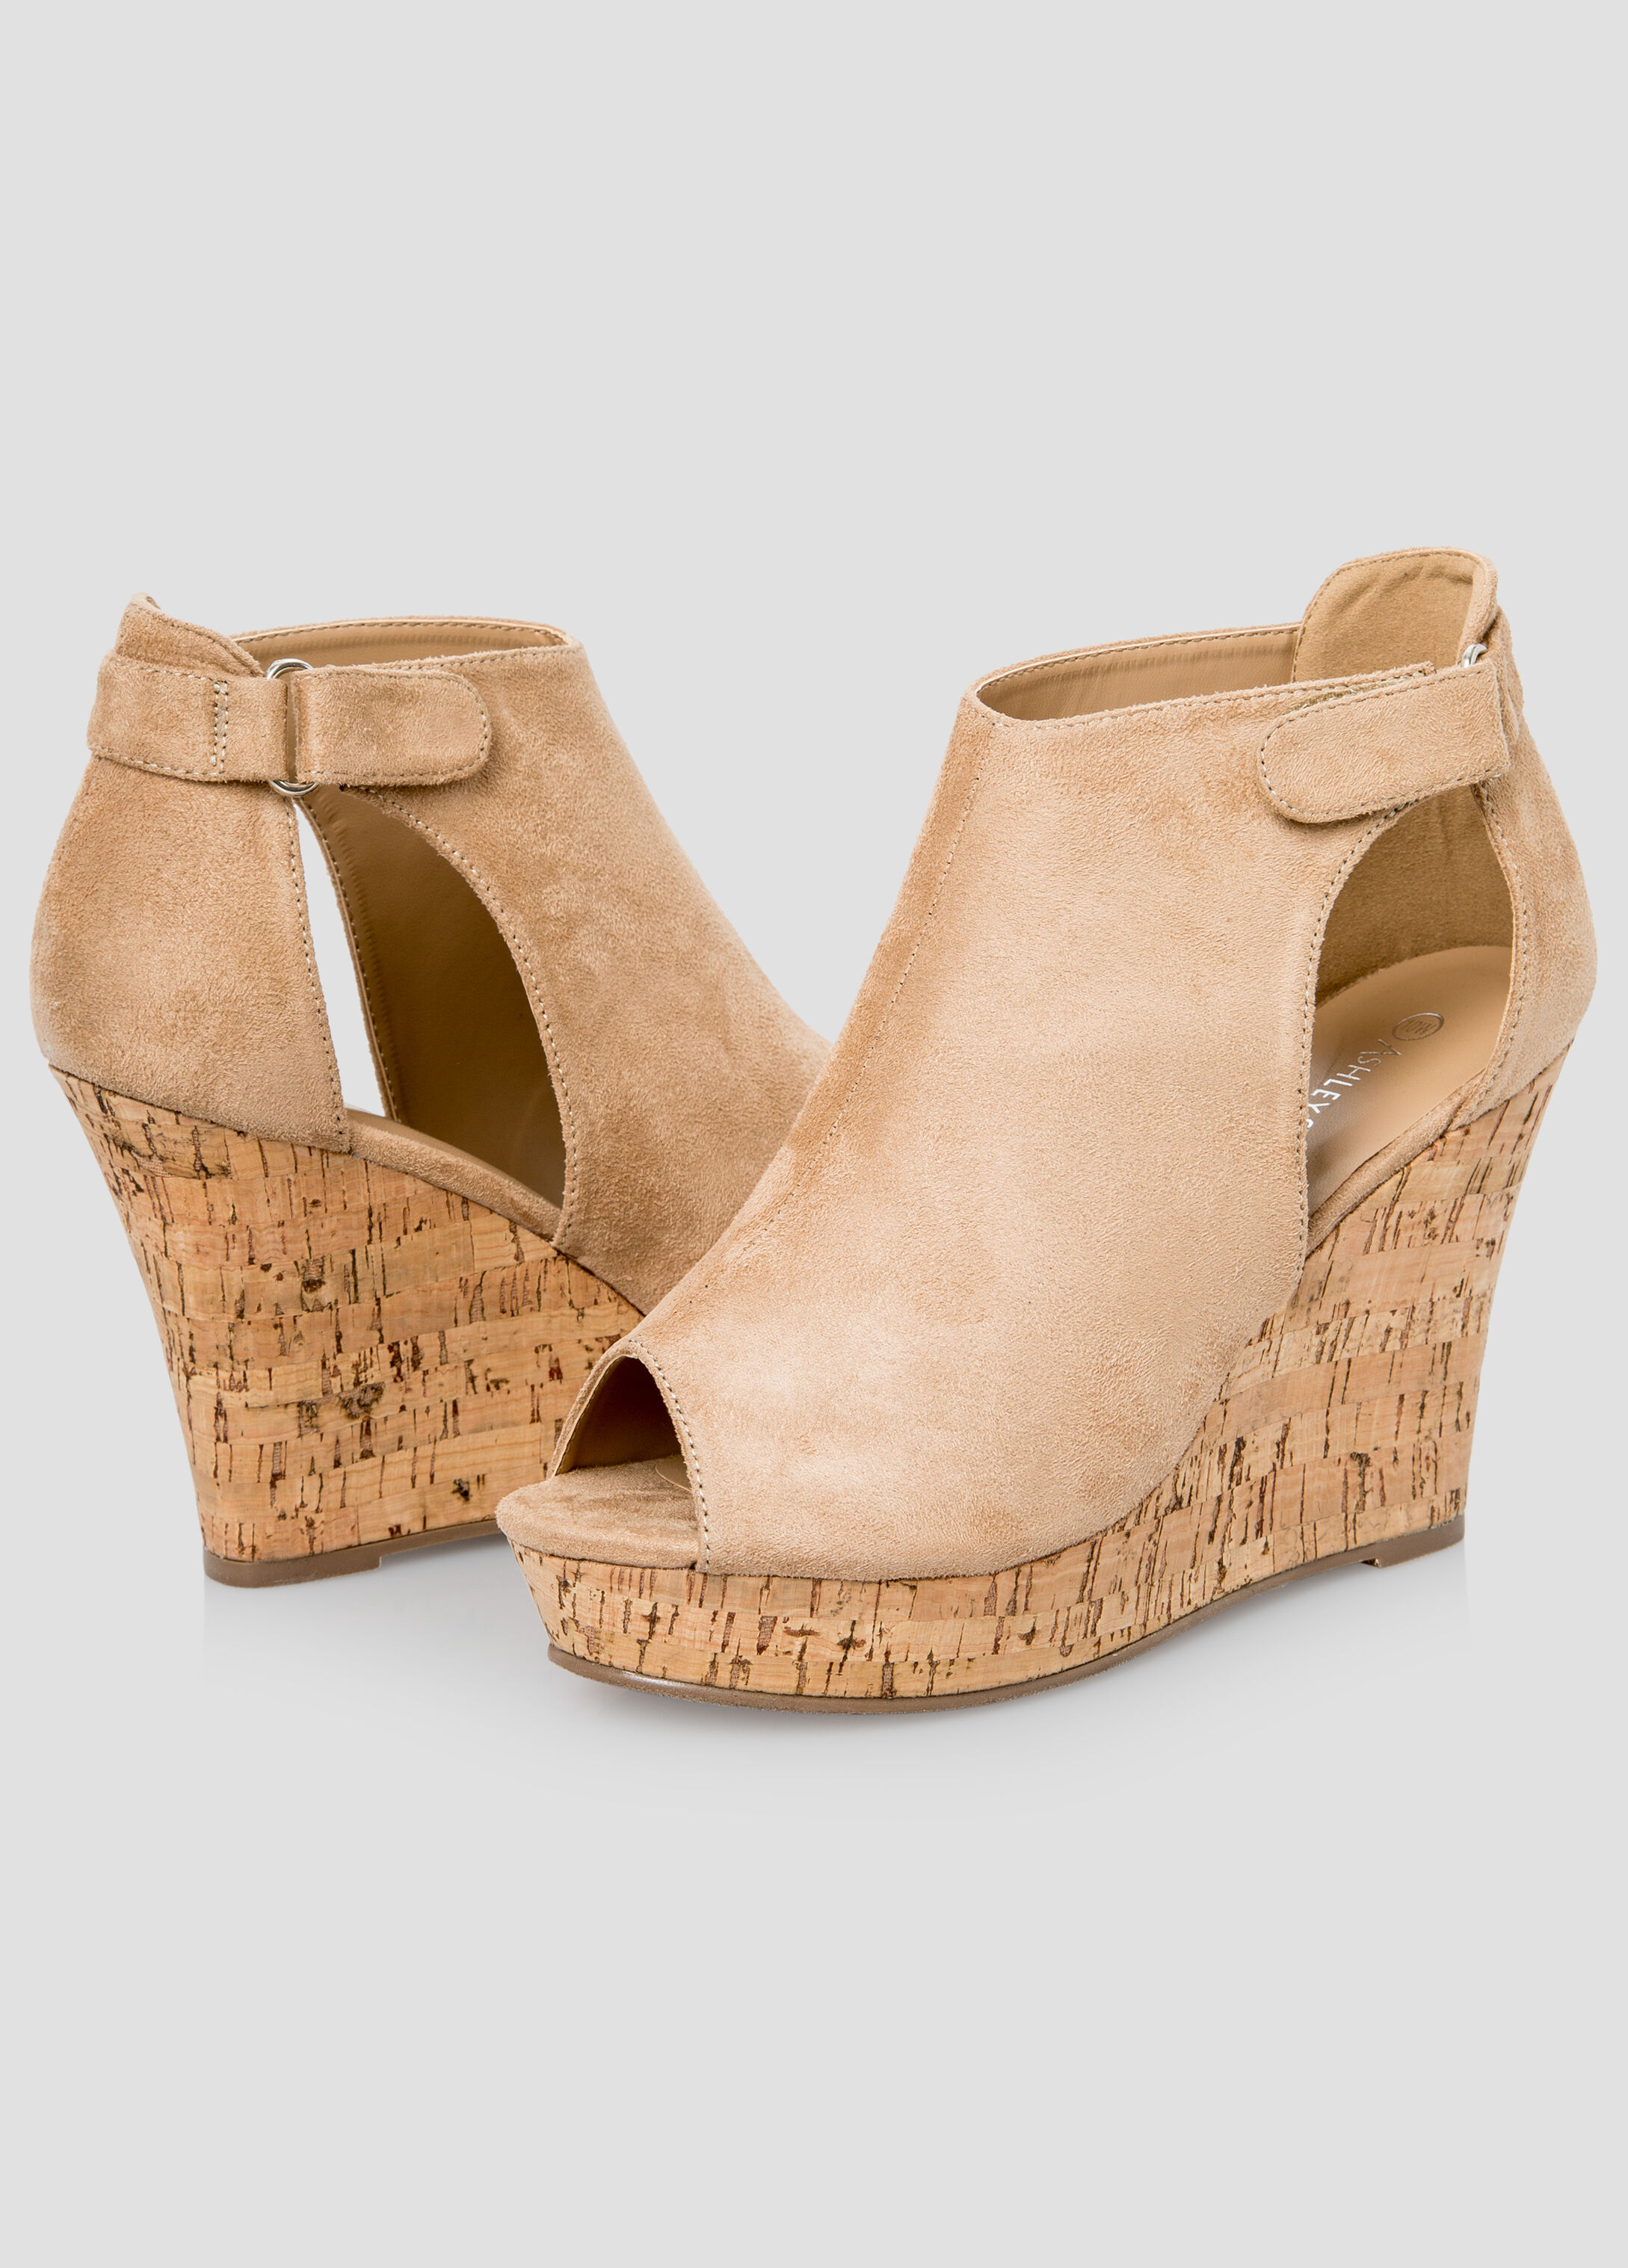 3bdfb3aede7b Open toe cork wedge wide width plus size shoes ashley jpg 346x482 Wide  width wedge sandals